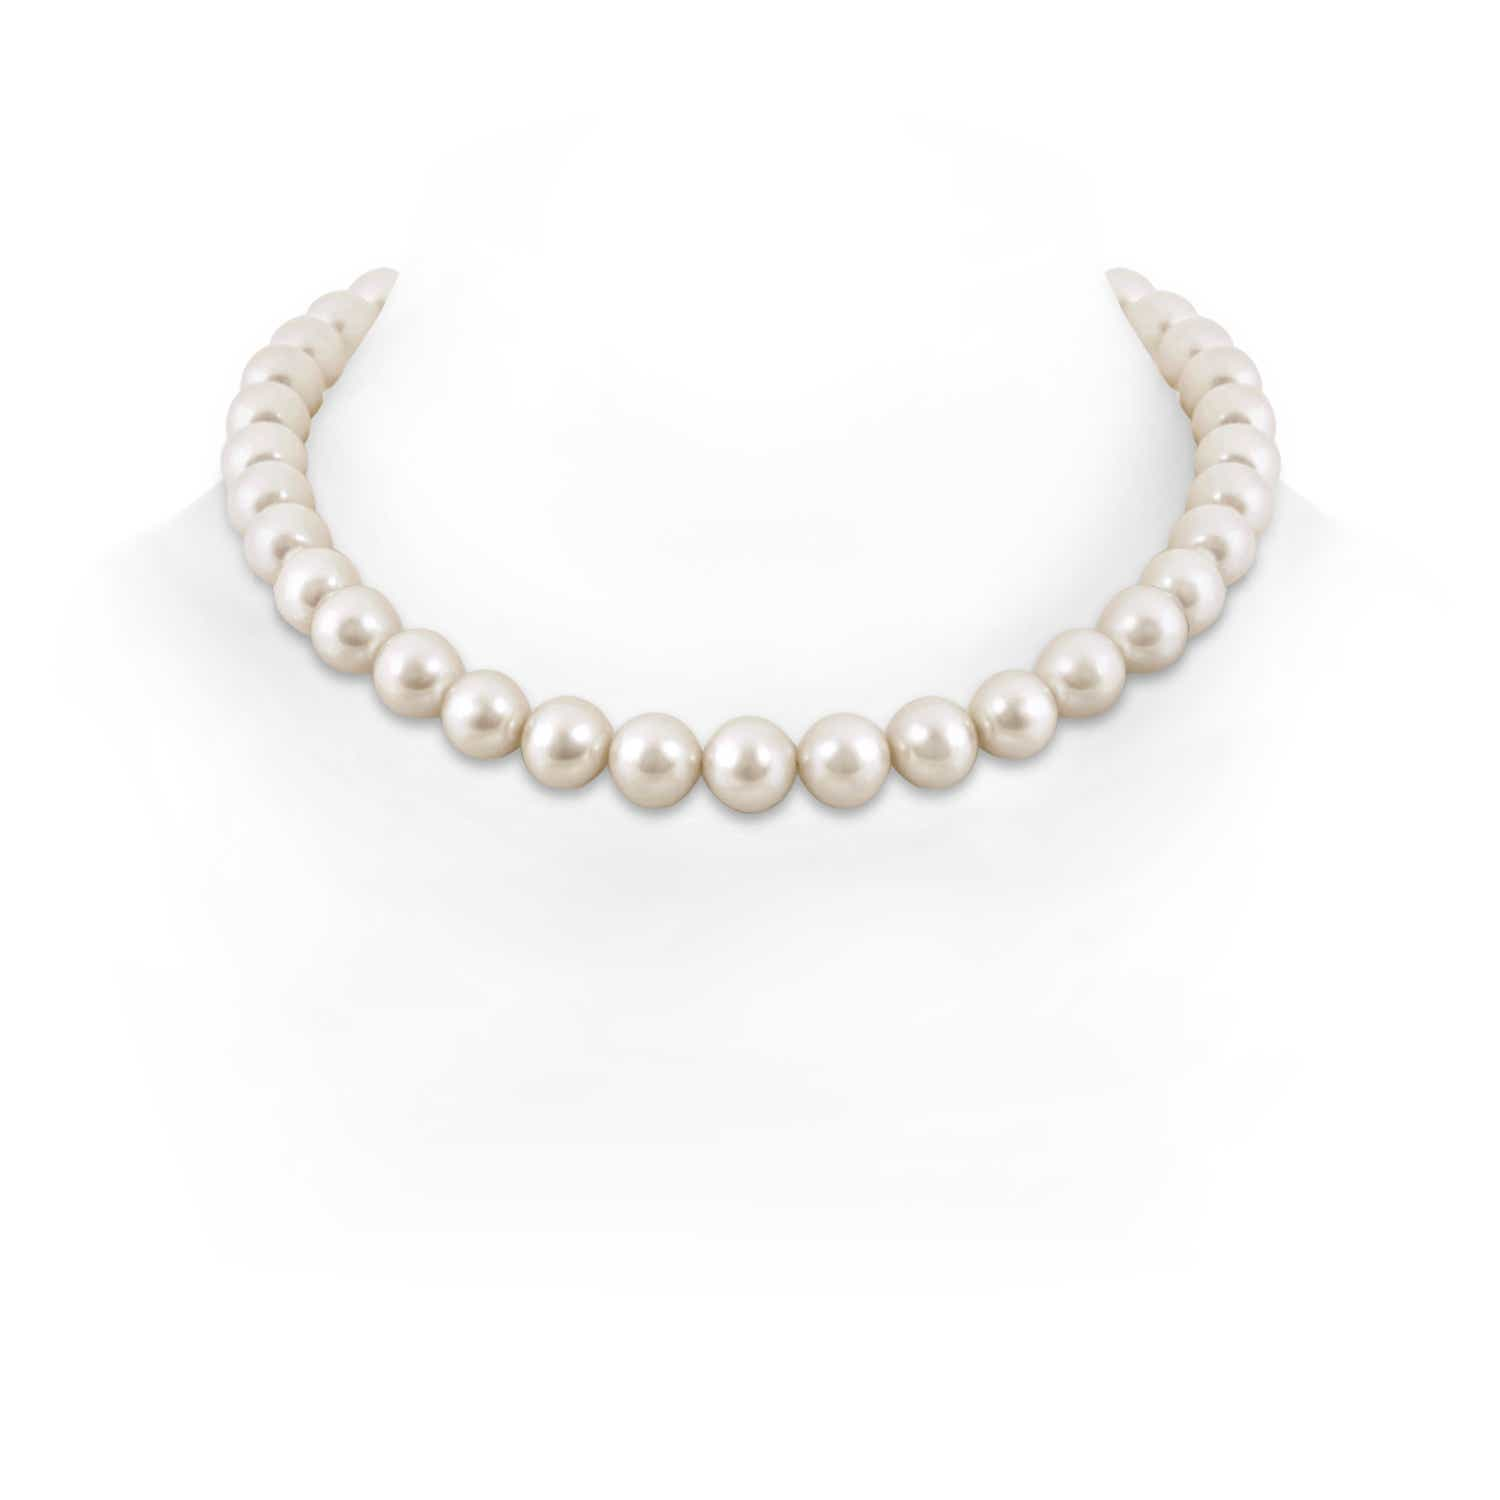 11-12mm, 16 South Sea Cultured Pearl Single Line Choker